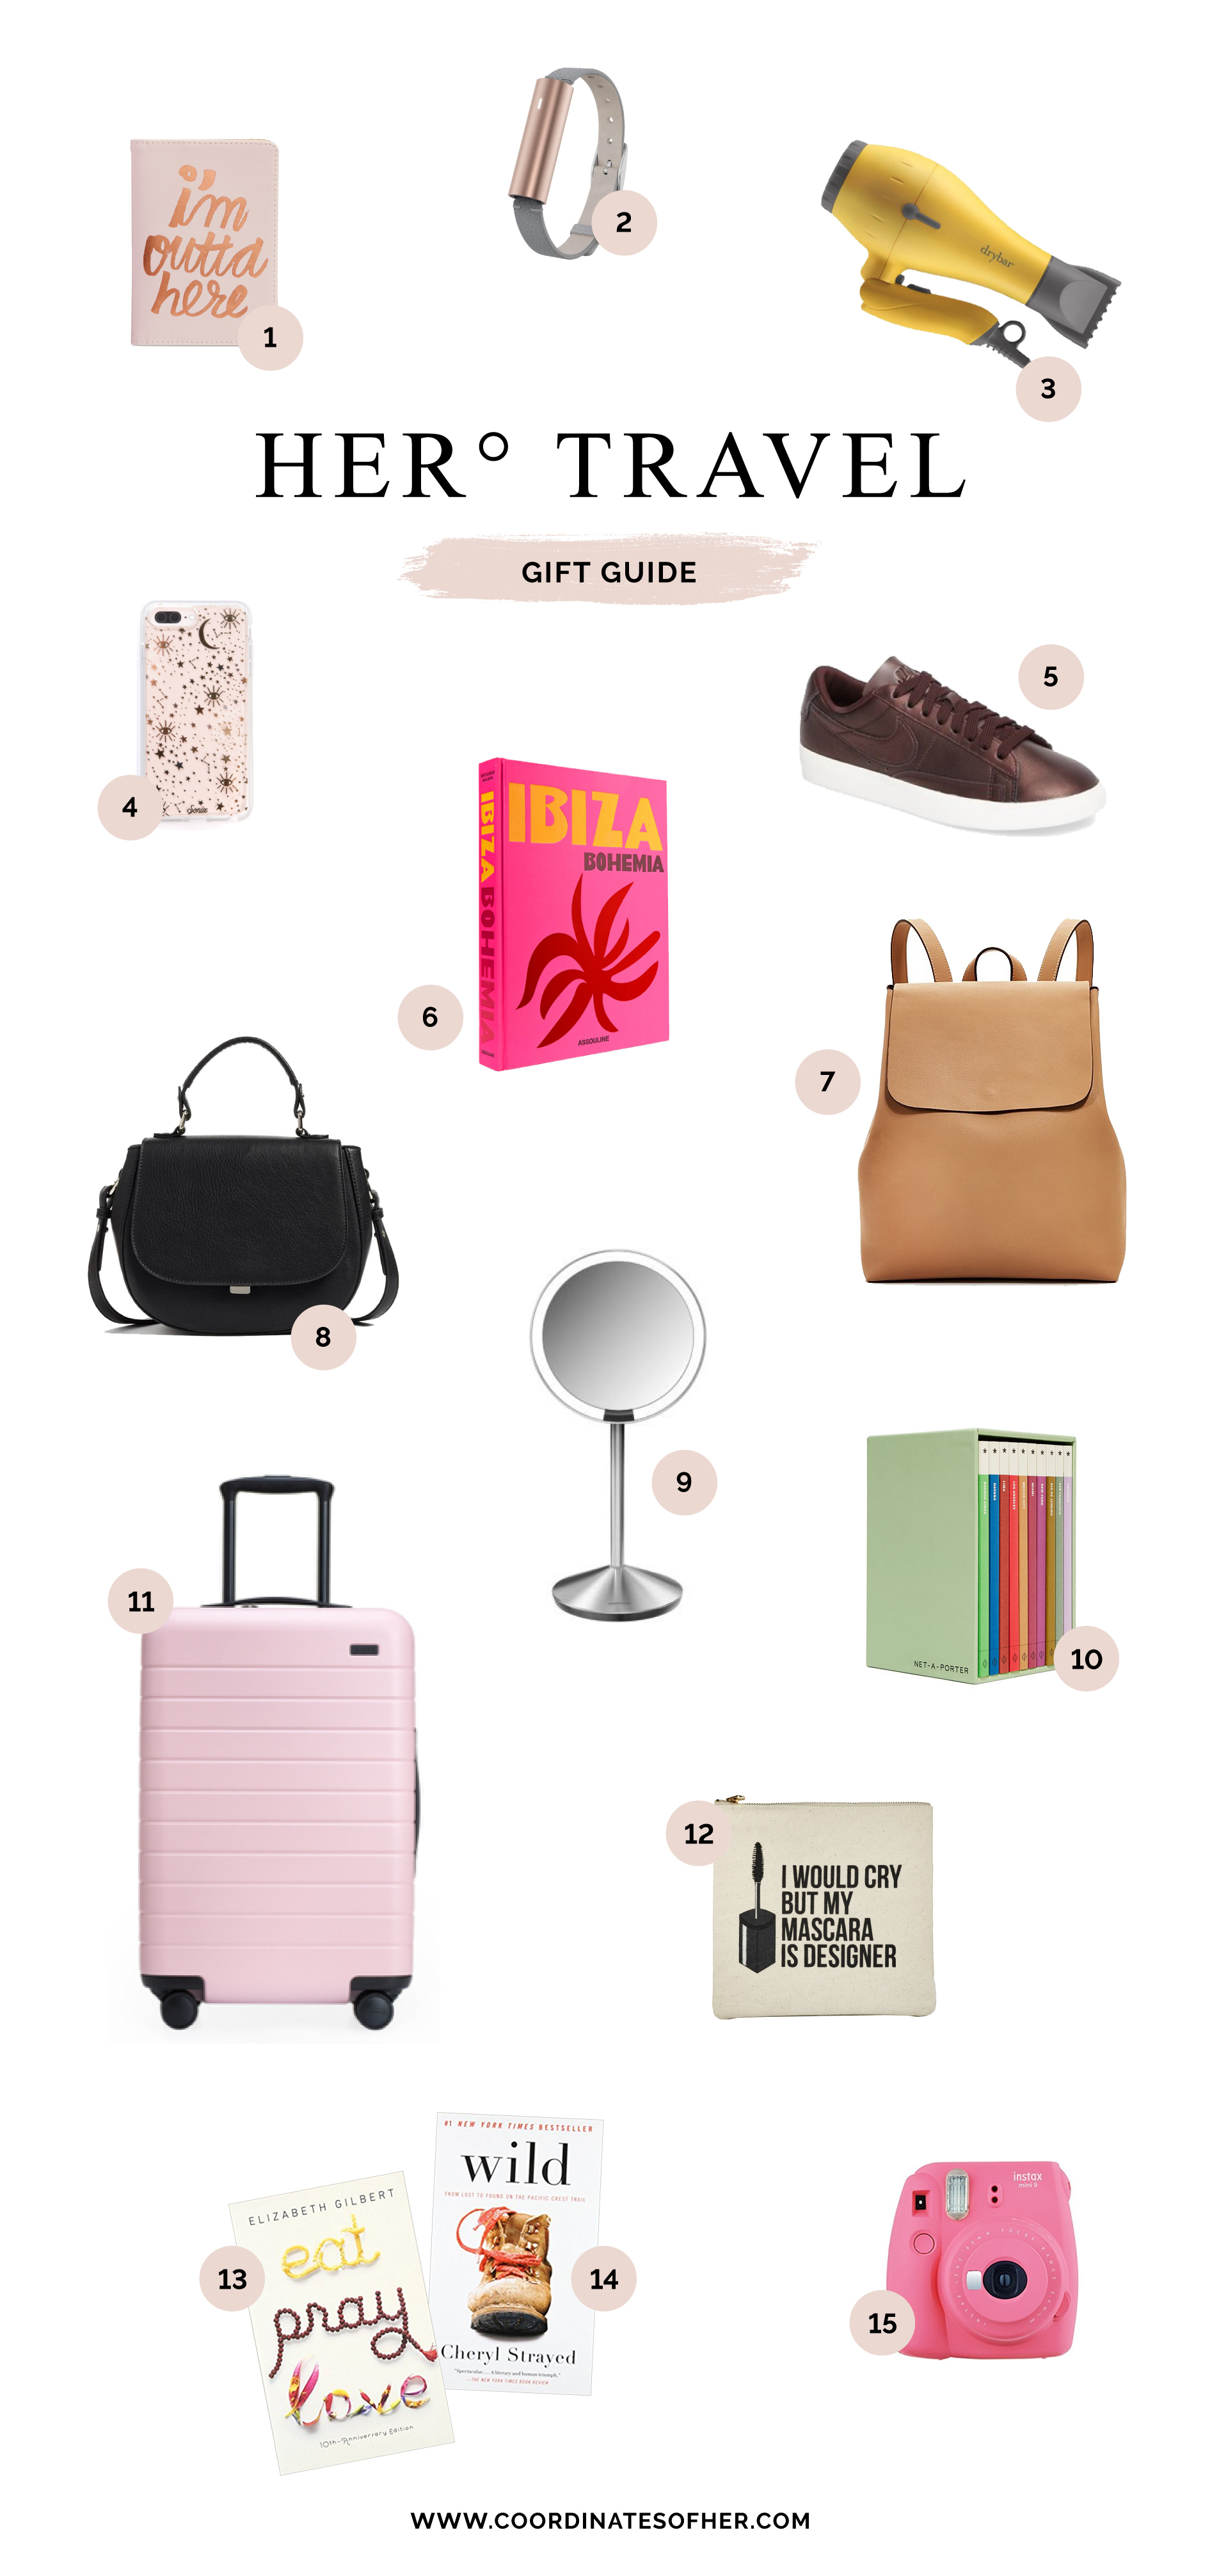 HER°-TRAVEL-GIFT-GUIDE.jpg